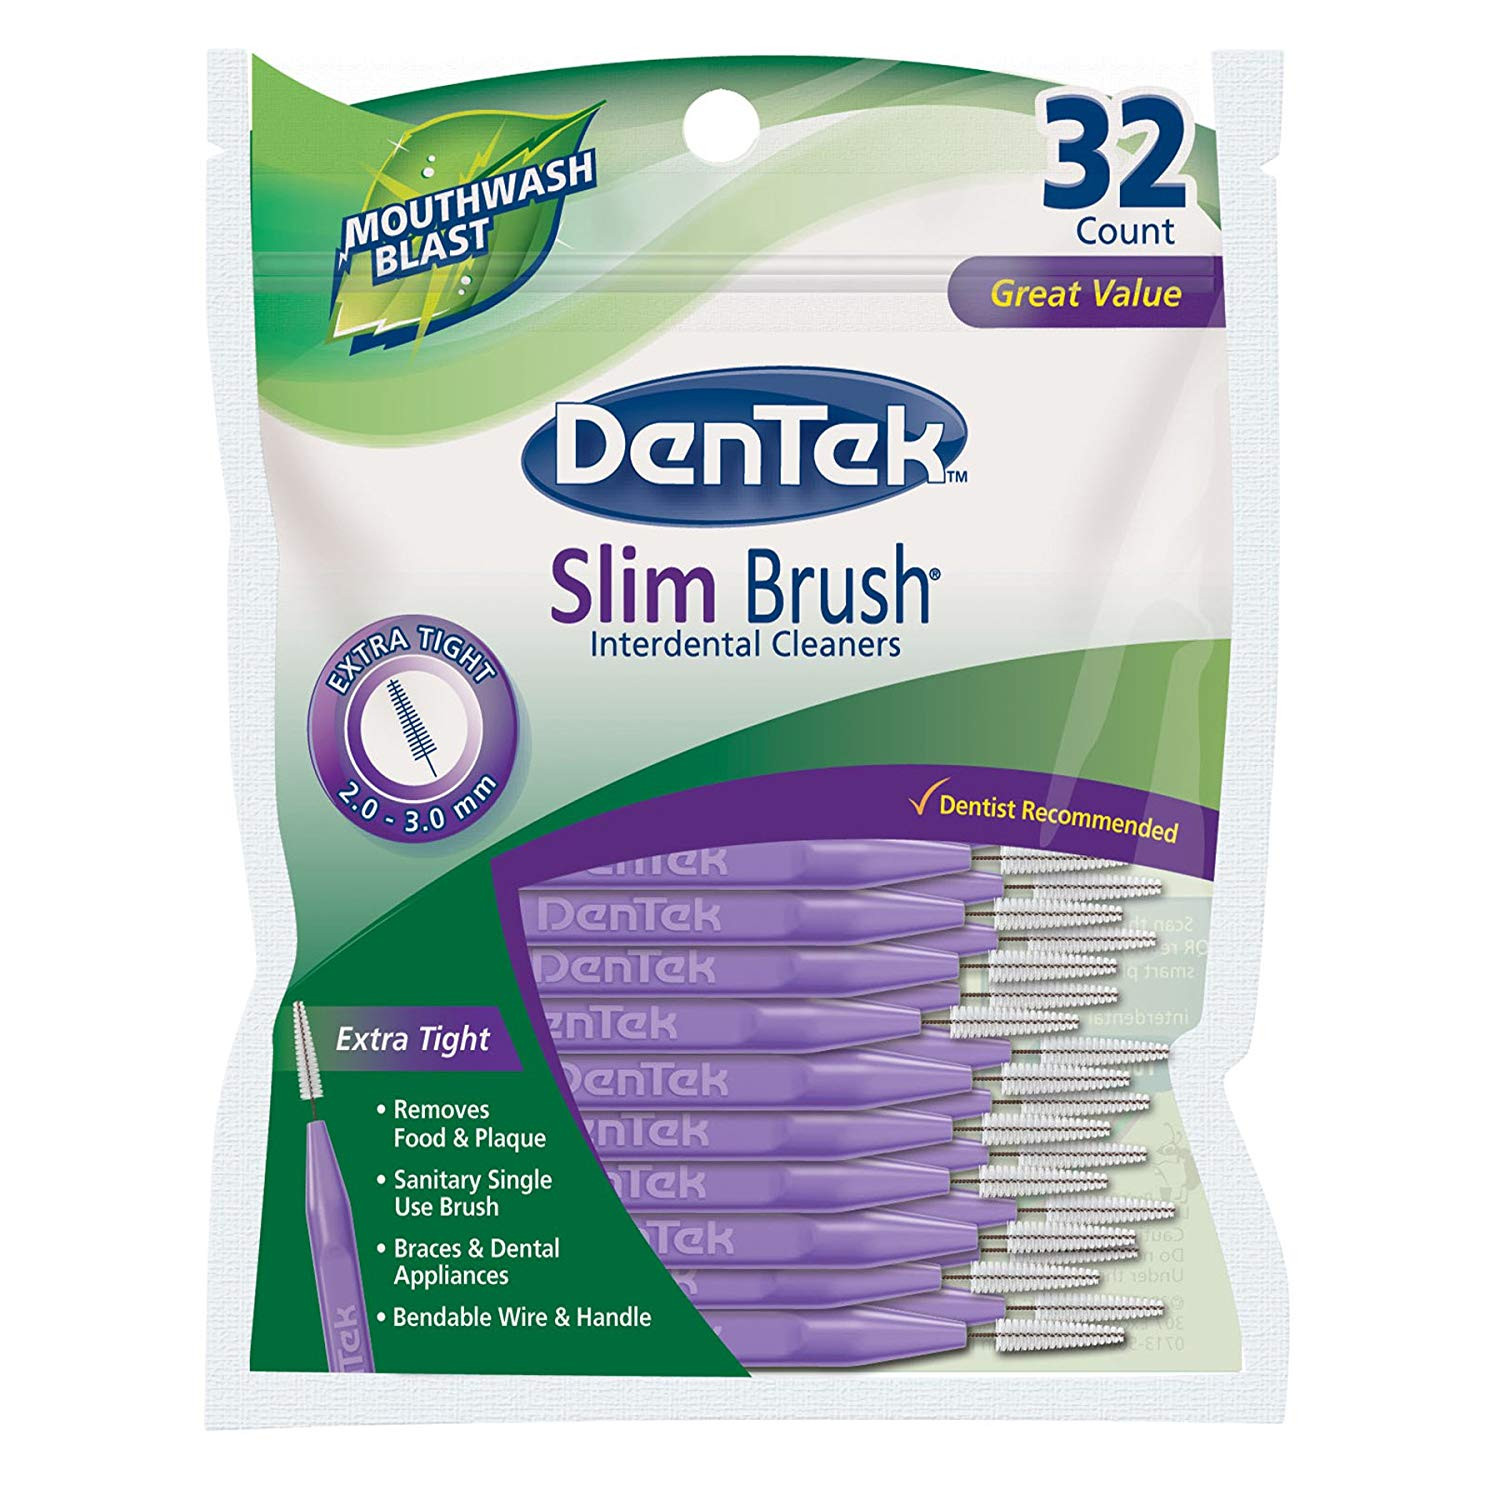 DenTek Slim Brush Interdental Cleansers, Extra Tight, Mouthwash Blast--32 ea